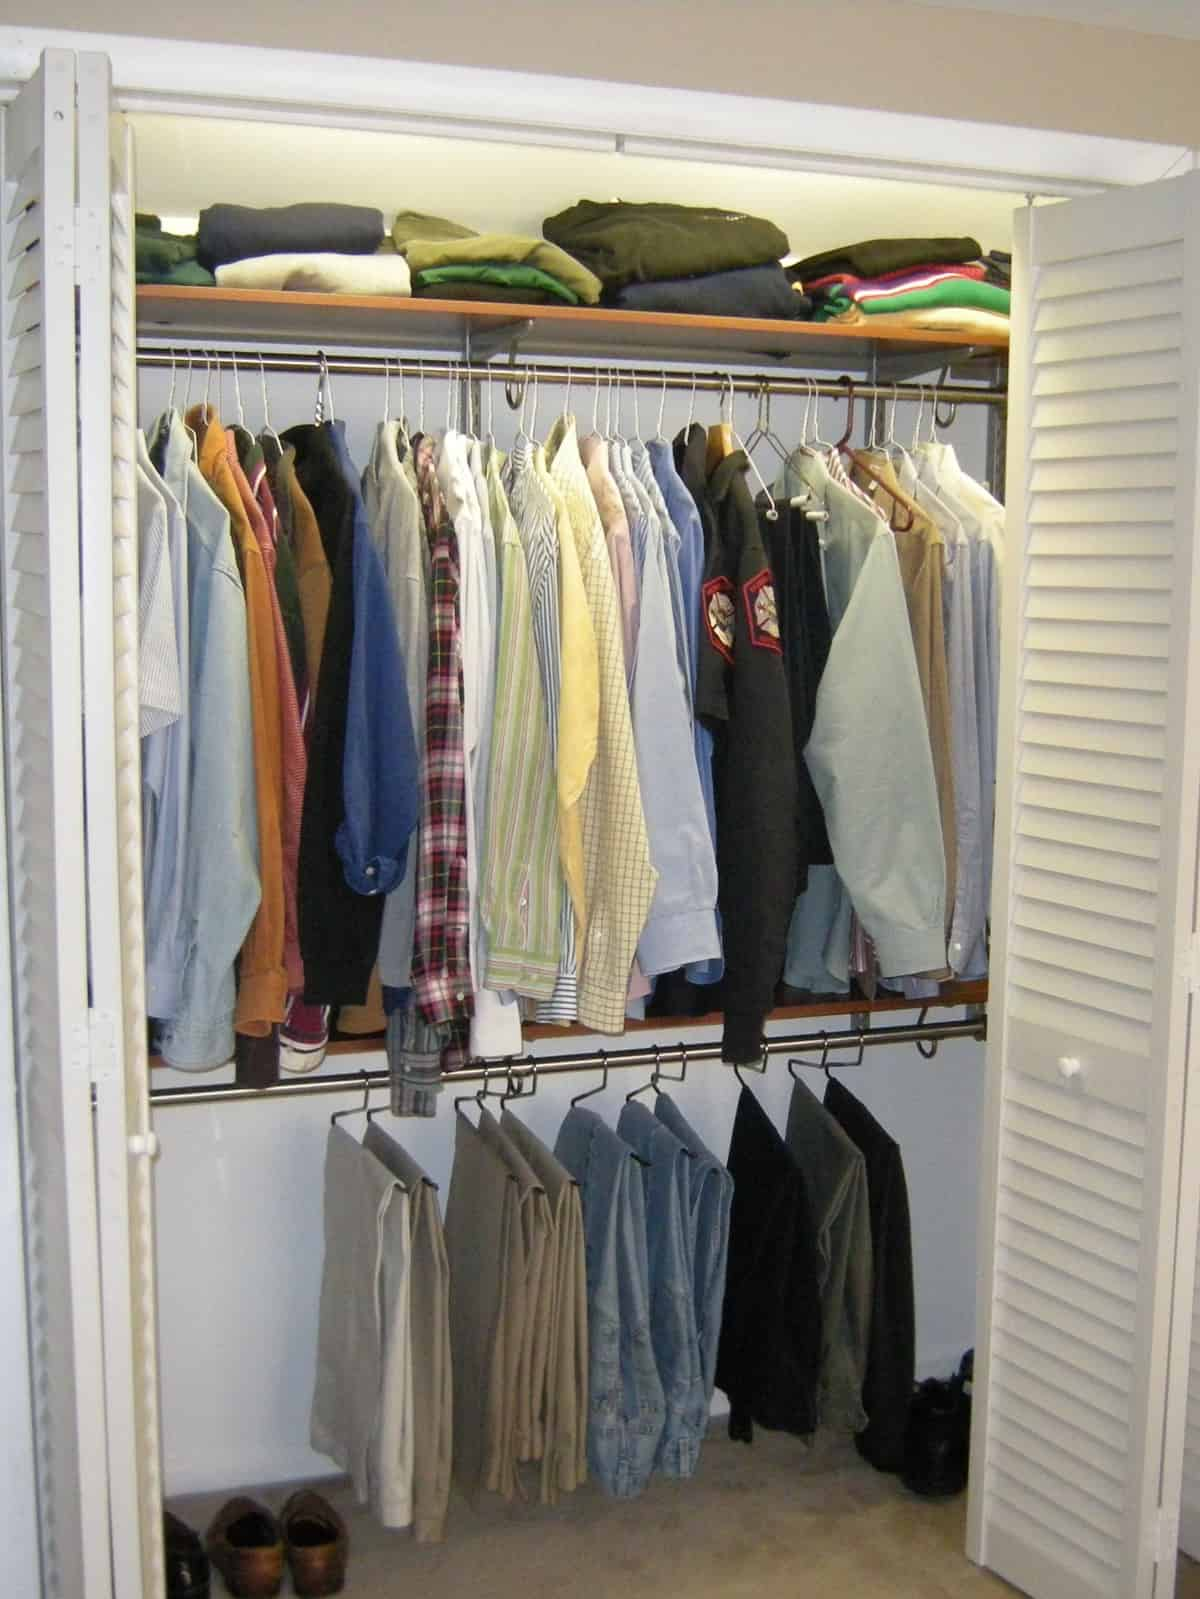 Merveilleux Master Bedroom Closet Organized With Pants Hangers